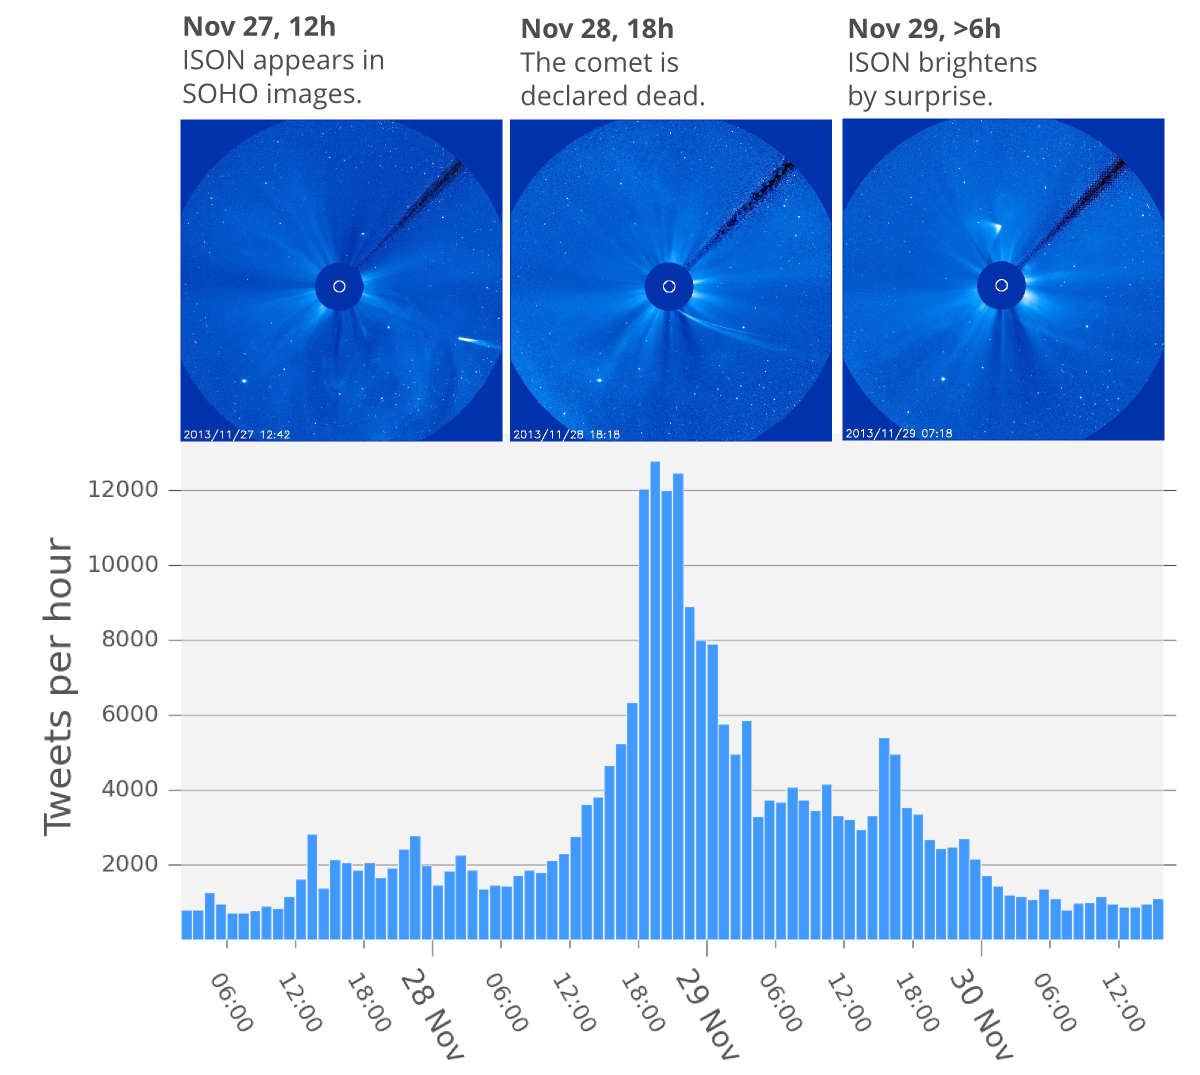 Tweets per hour during Comet ISON's close encounter with the Sun.